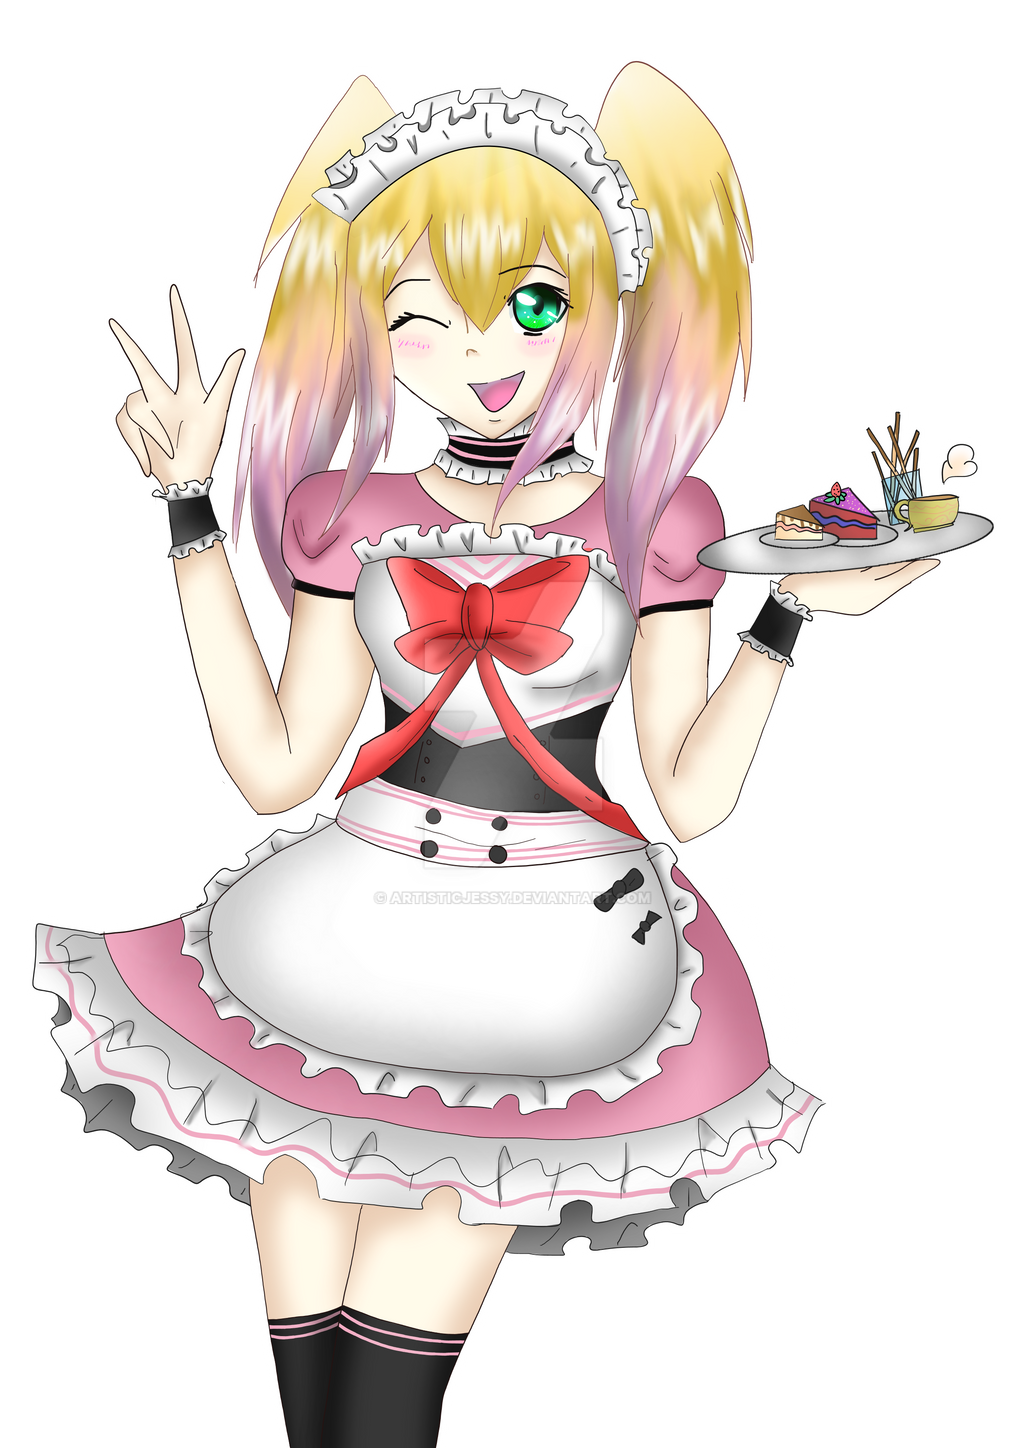 Maid Sakura ~ Cosplay Cafe picture by ArtisticJessy